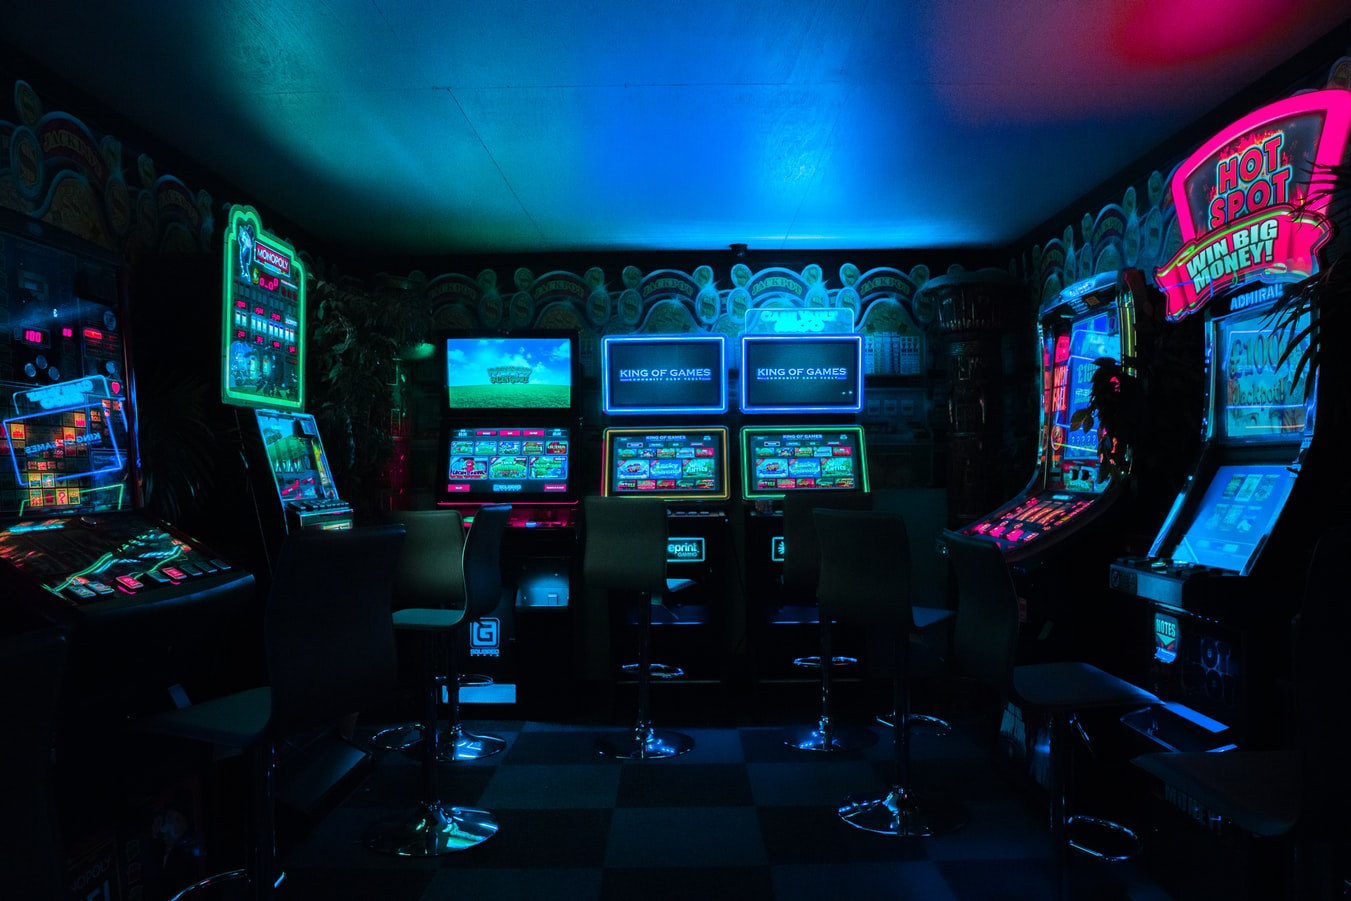 slot machines in dark